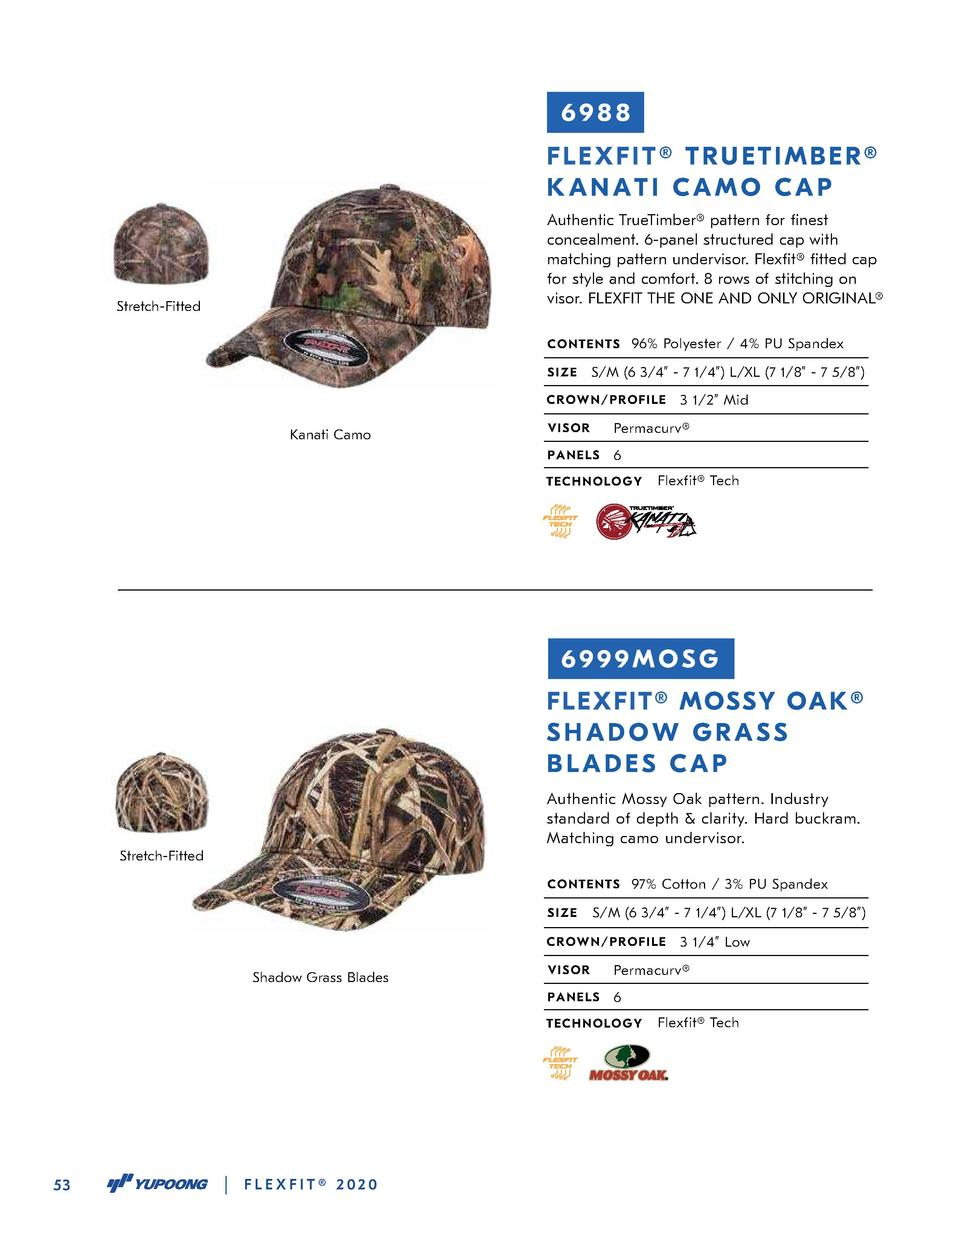 6988 FLEXFIT   TRUETIMBER   KANATI CAMO CAP Authentic TrueTimber   pattern for   nest concealment. 6-panel structured cap ...